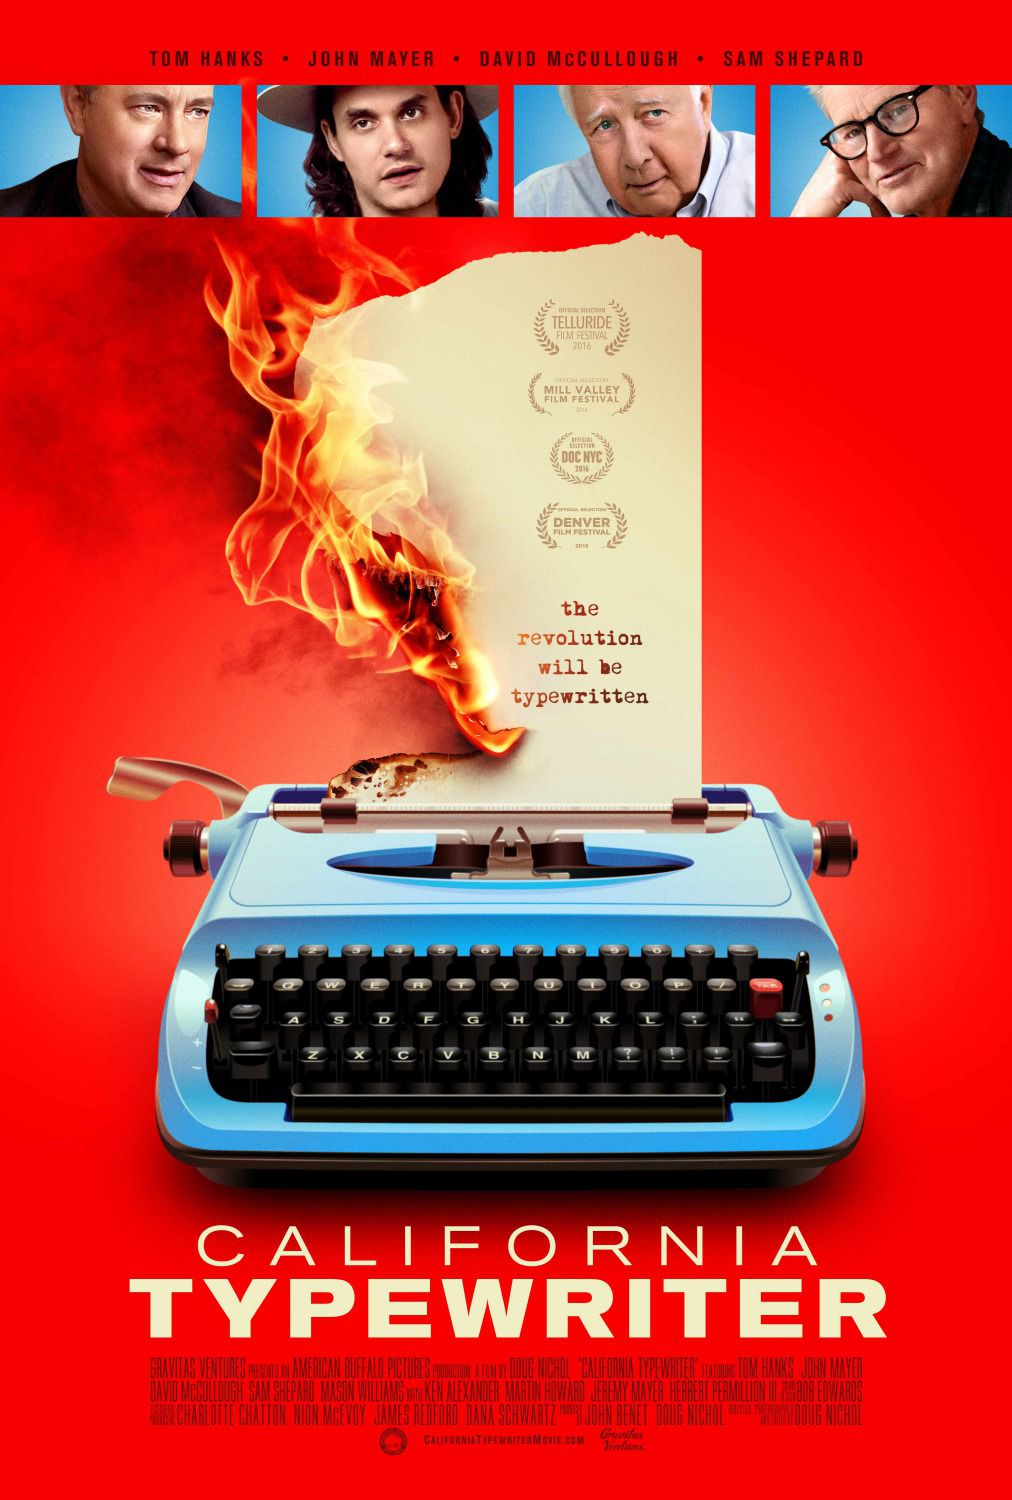 California Typewriter - Tom Hanks - John Mayer - David McCullough - Sam Shepard